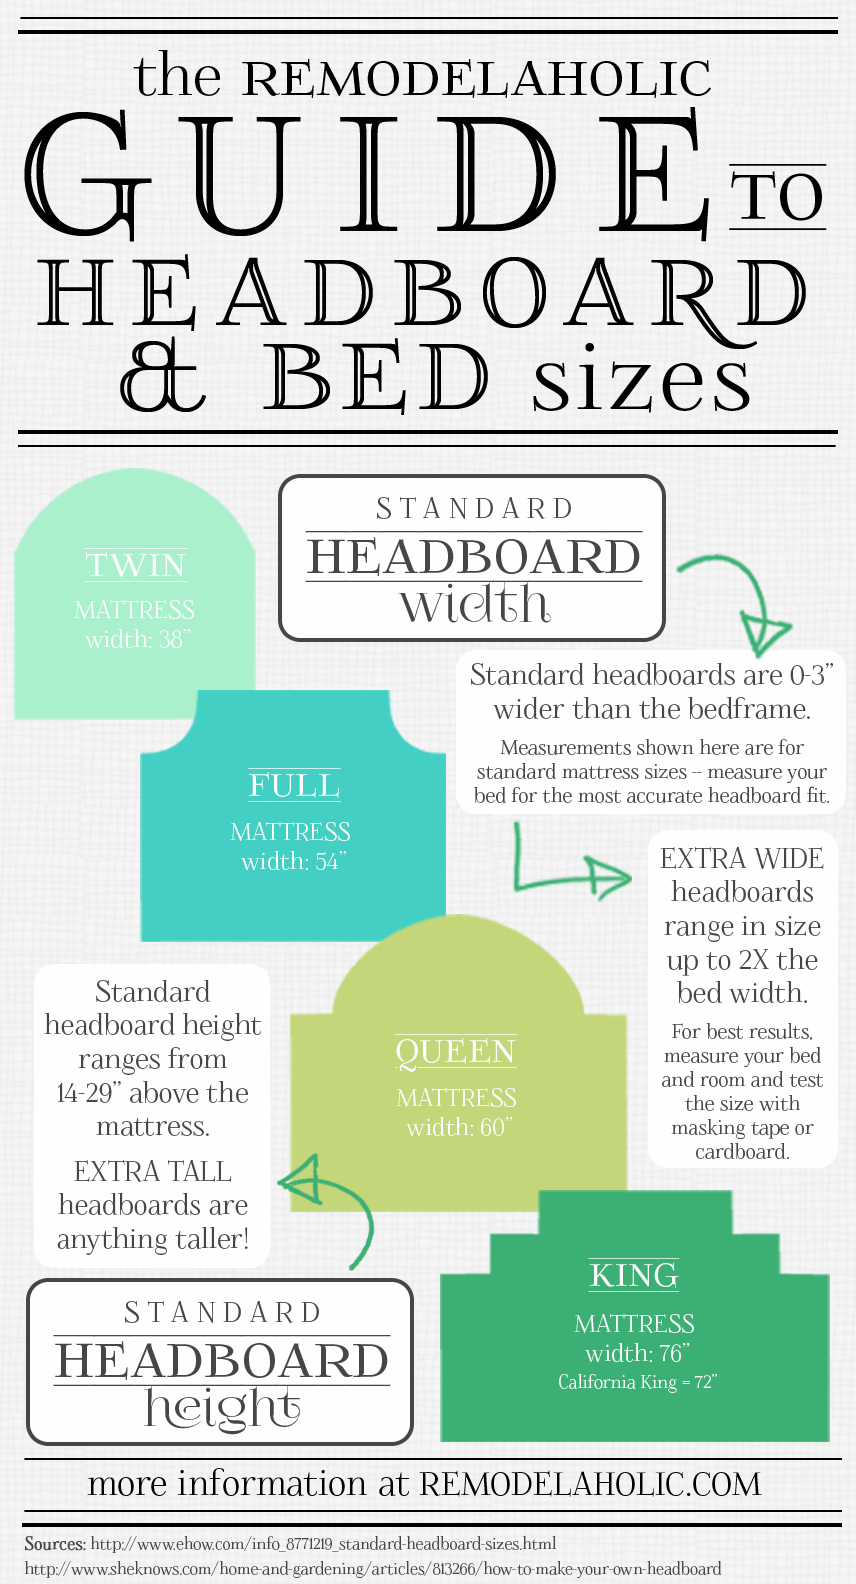 Your Guide to Headboard Sizes | infographic via Remodelaholic.com  #headboardweek #diy #